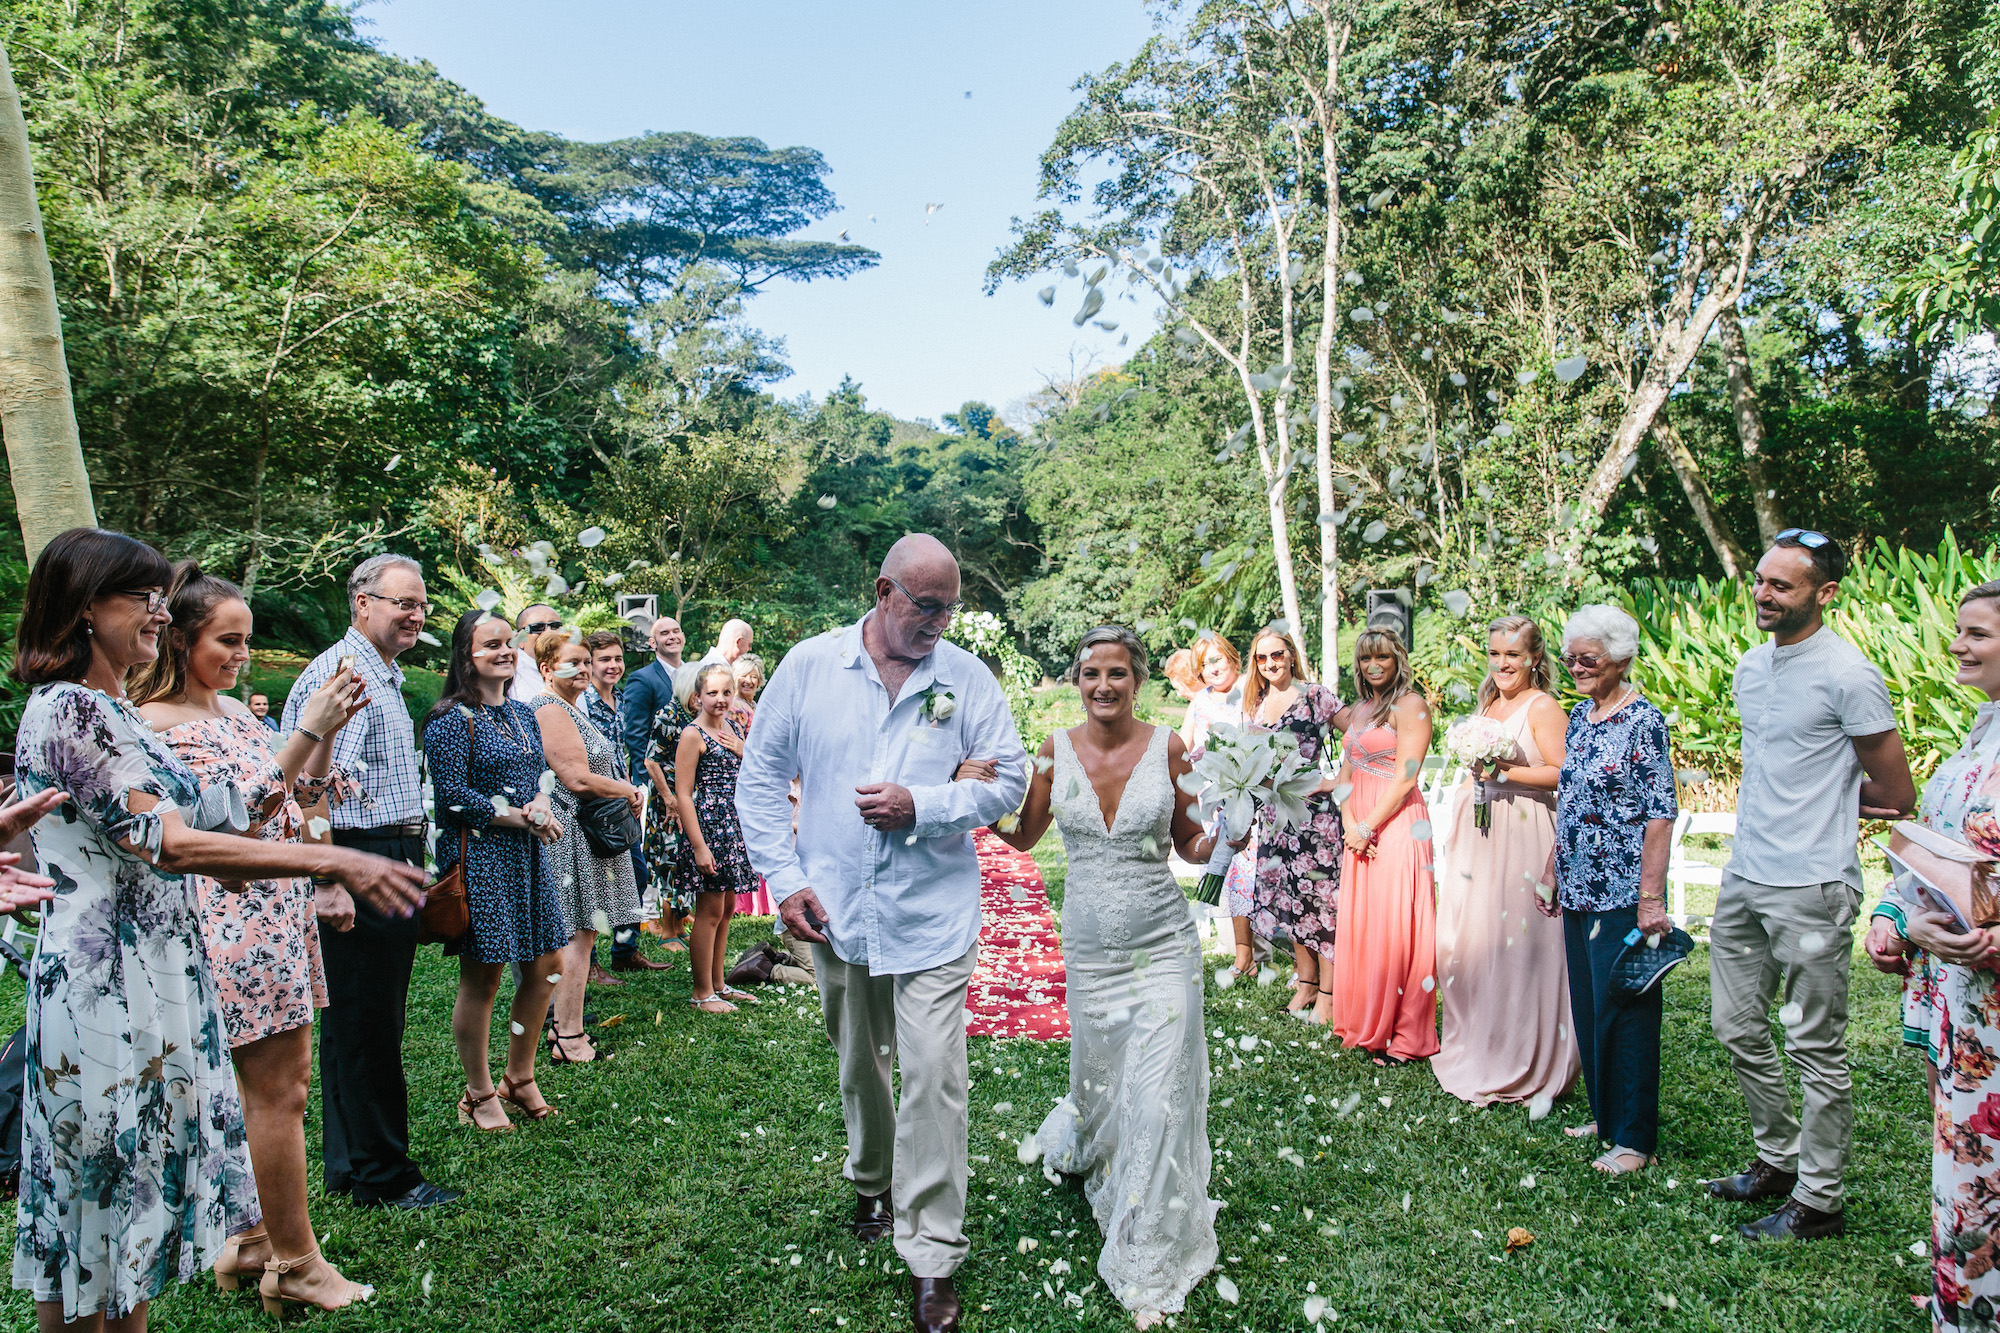 throwing petals on bride and groom